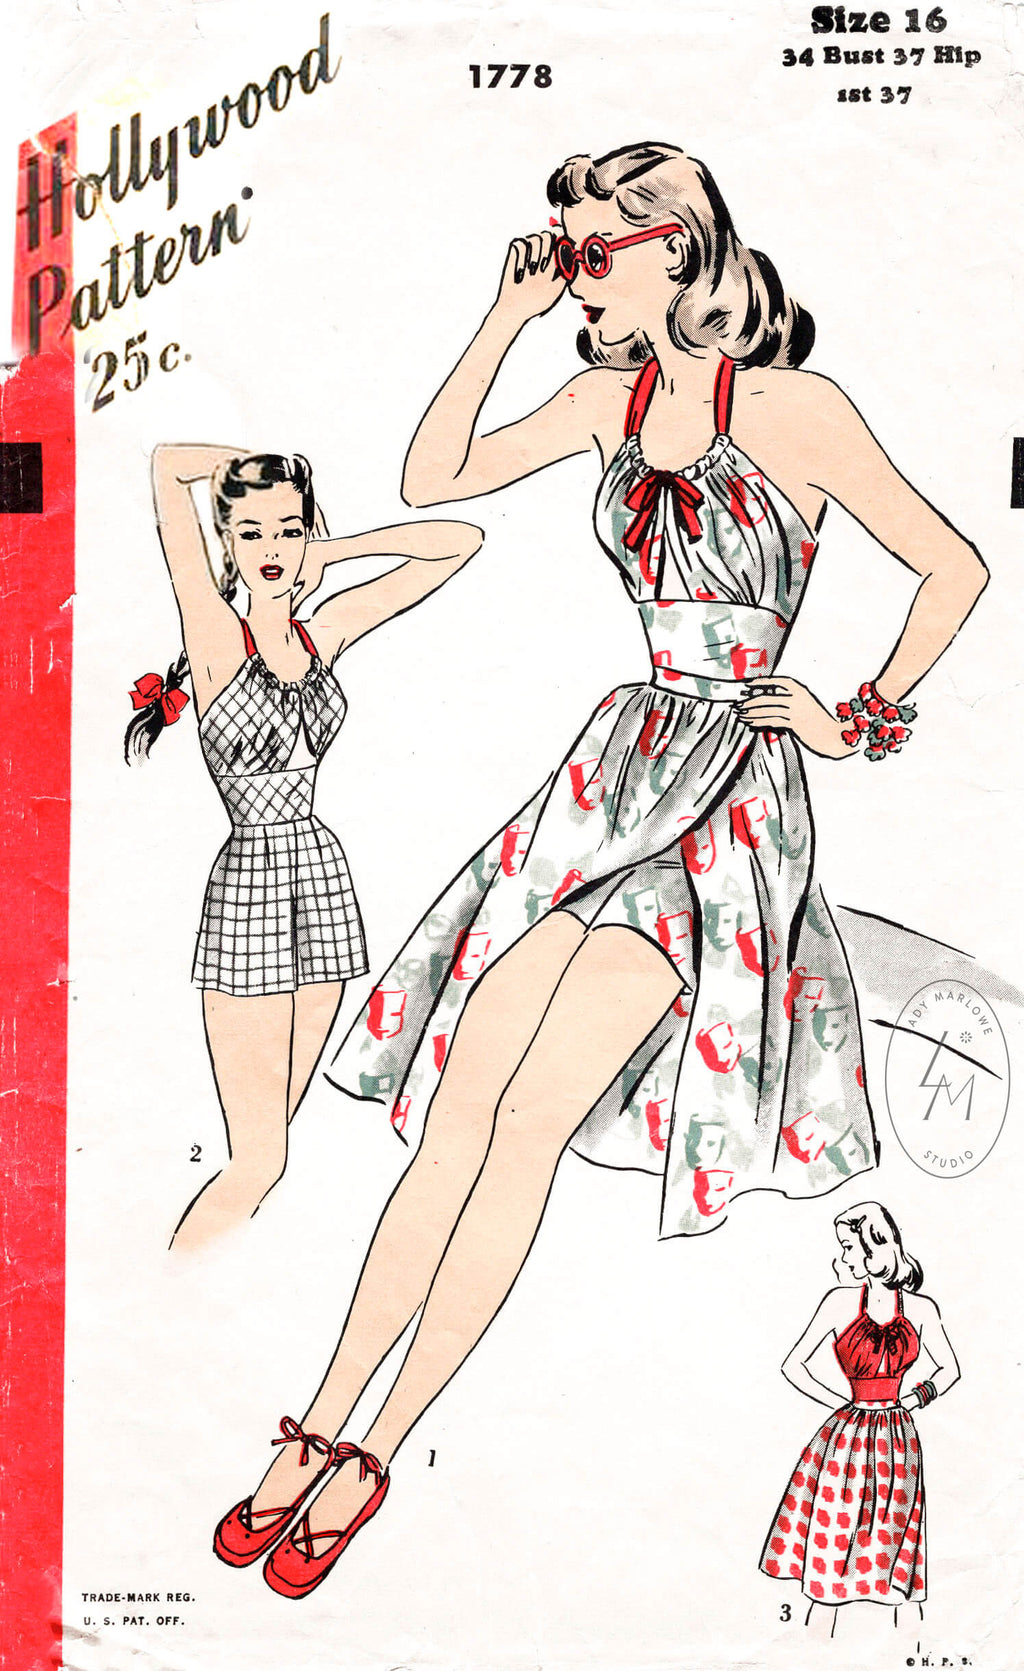 Hollywood 1778 1940s beachwear vintage sewing pattern repo playsuit romper and wrap skirt